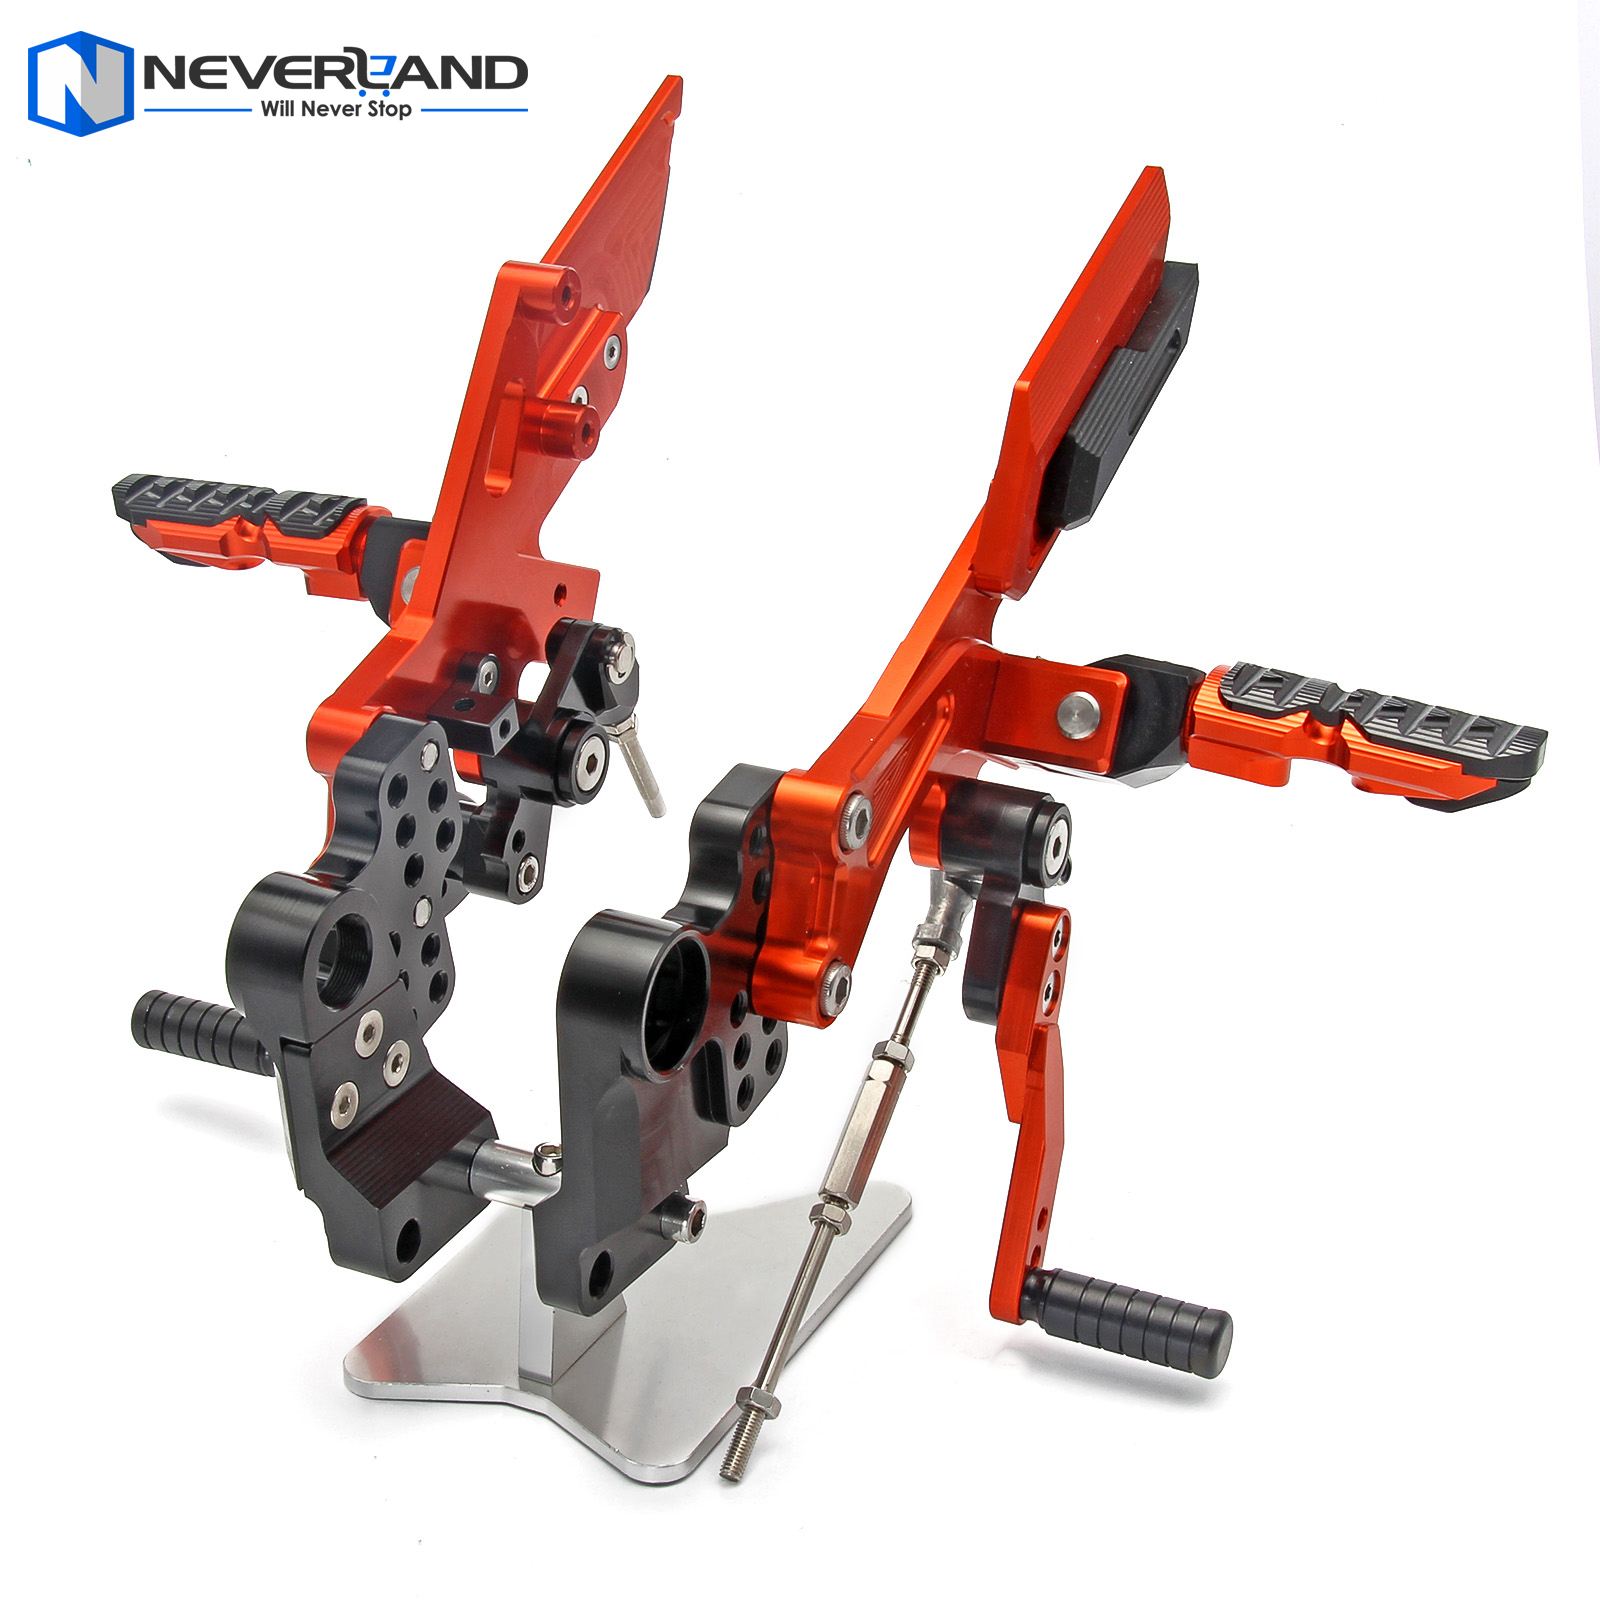 NEVERLAND CNC Adjustable Rider Rear Sets Rearset Footrest Foot Rest Pegs For KTM DUKE 125/200 2011-2014 2012 2013 Orange new wave rear brake disc rotor for ktm duke 125 2011 2012 2013 2014 duke200 2012 2014 duke390 13 14